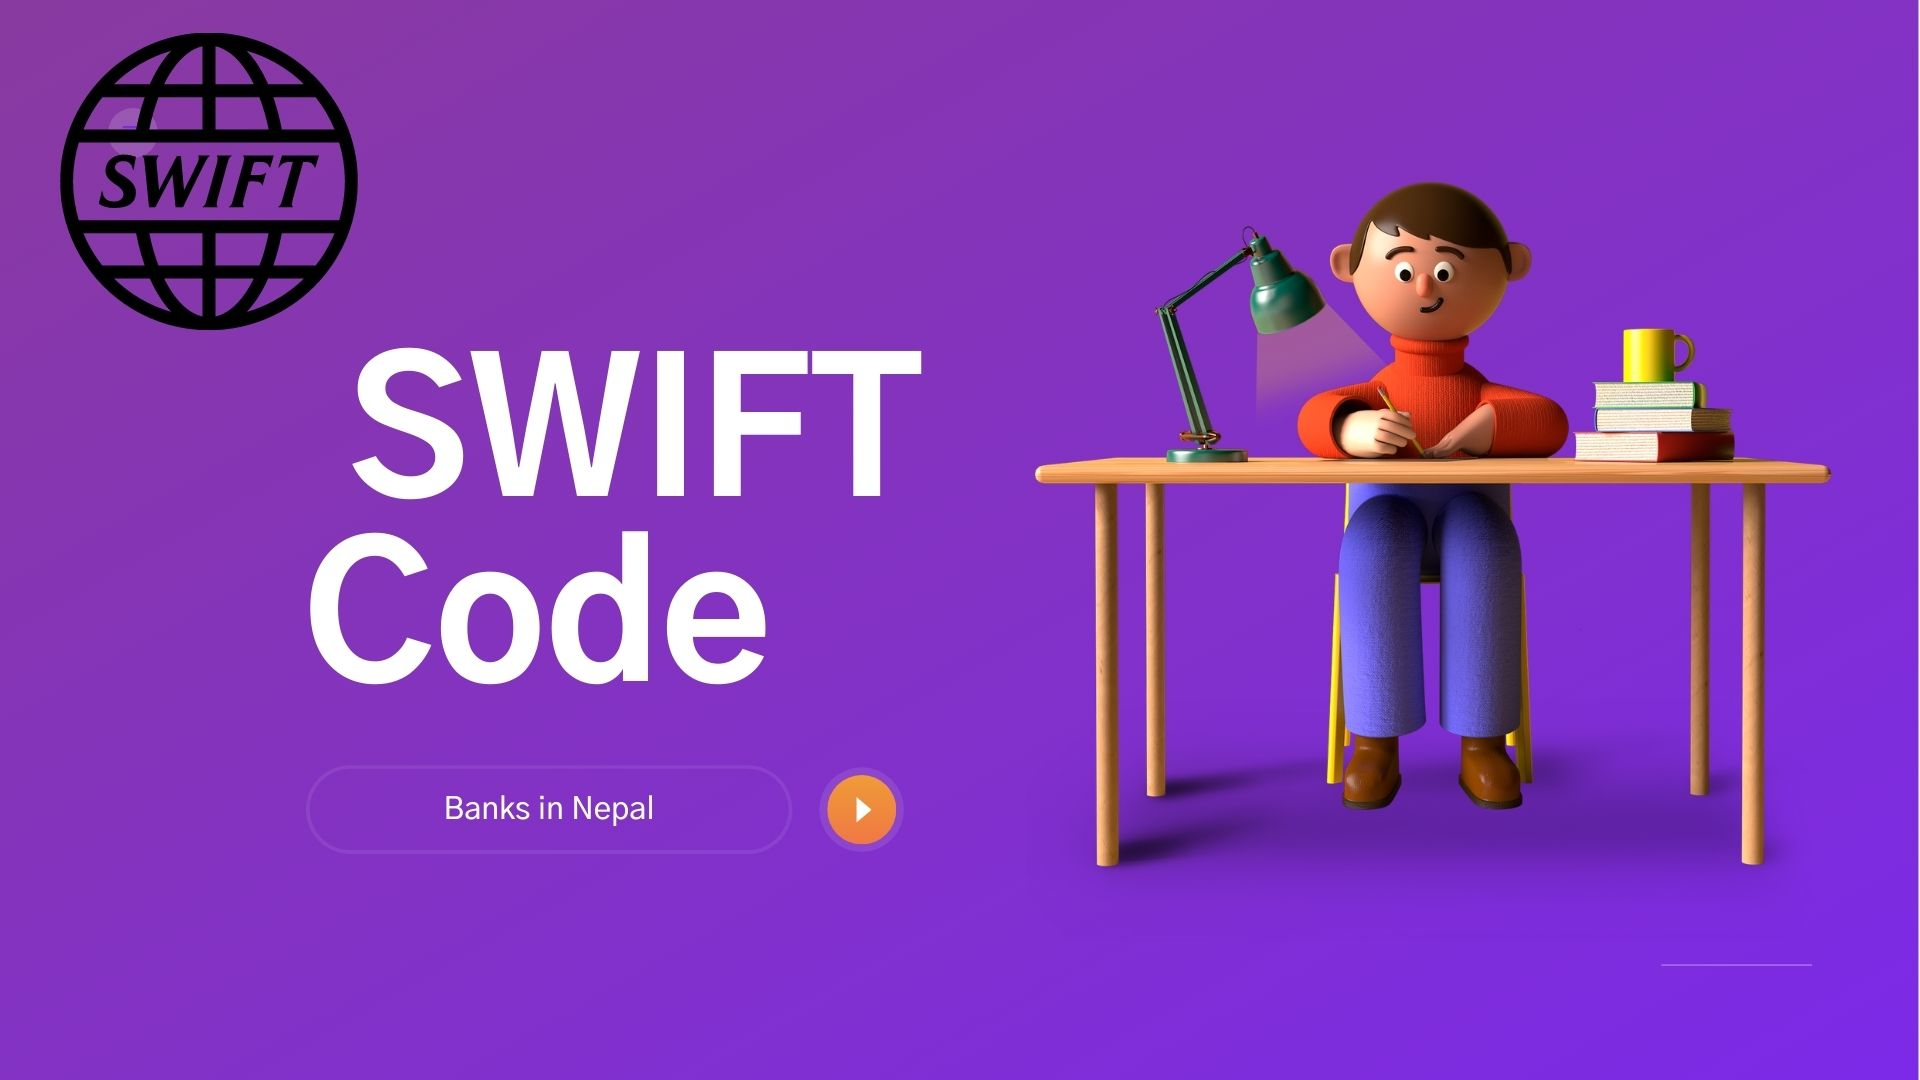 List of SWIFT Code for Banks in Nepal